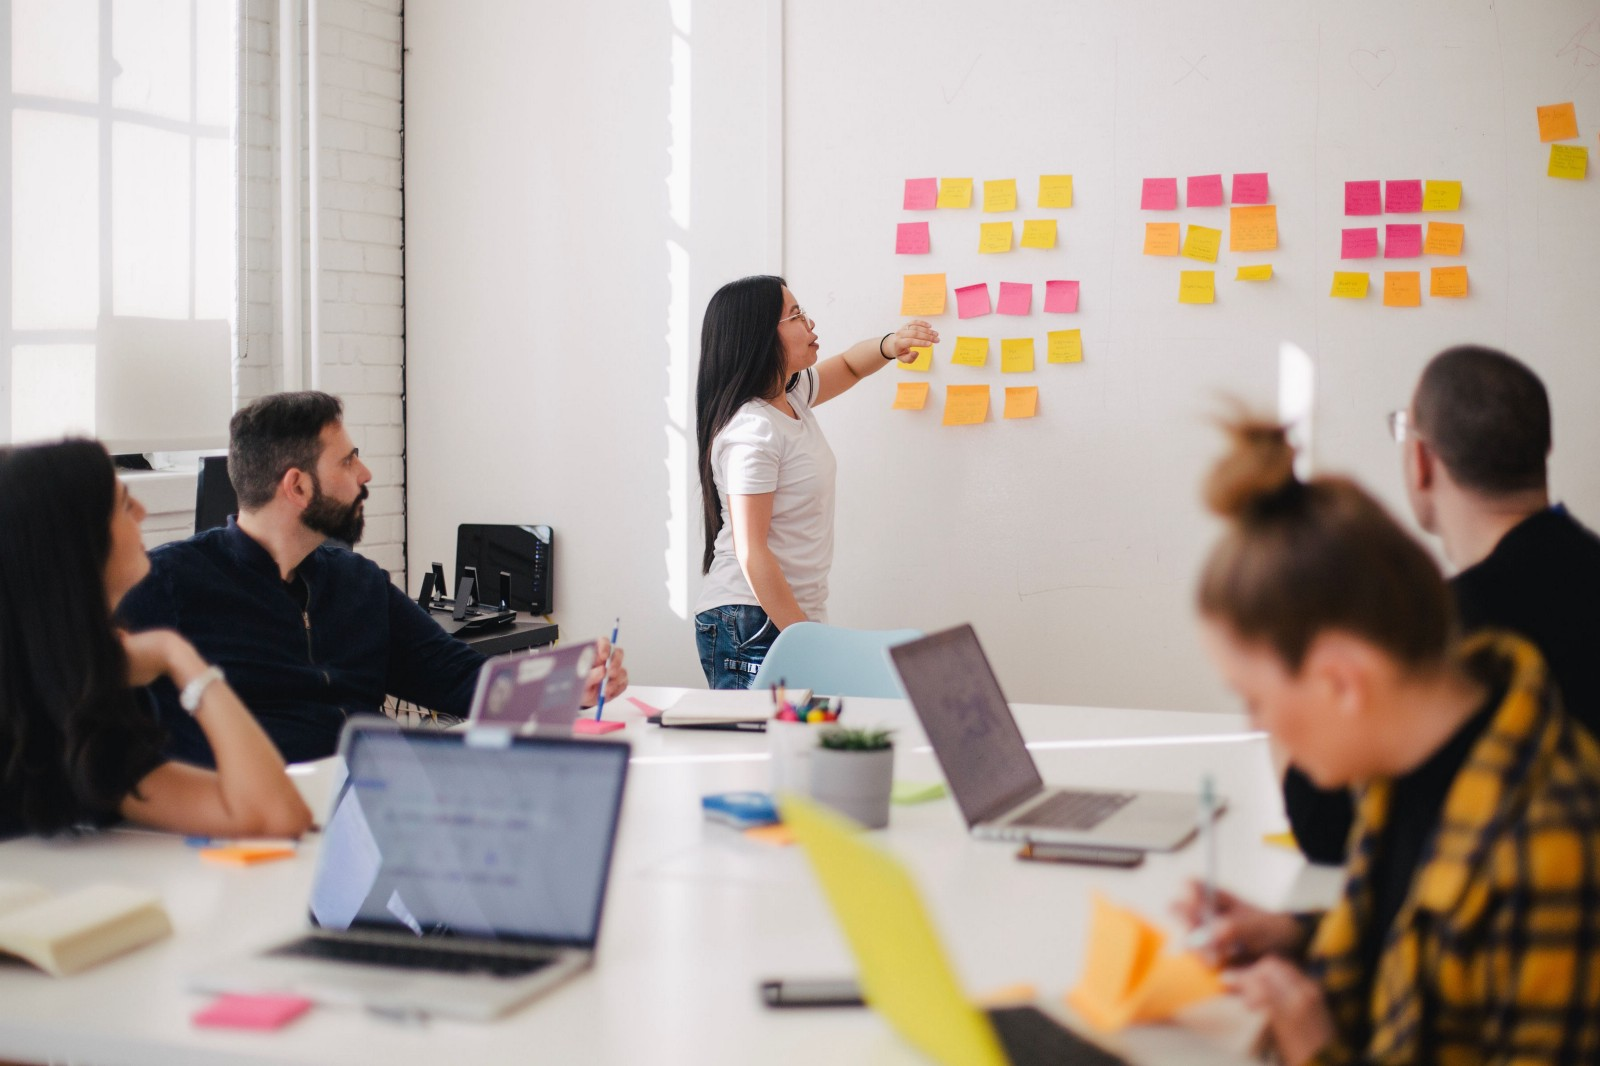 Content Design is about more than content